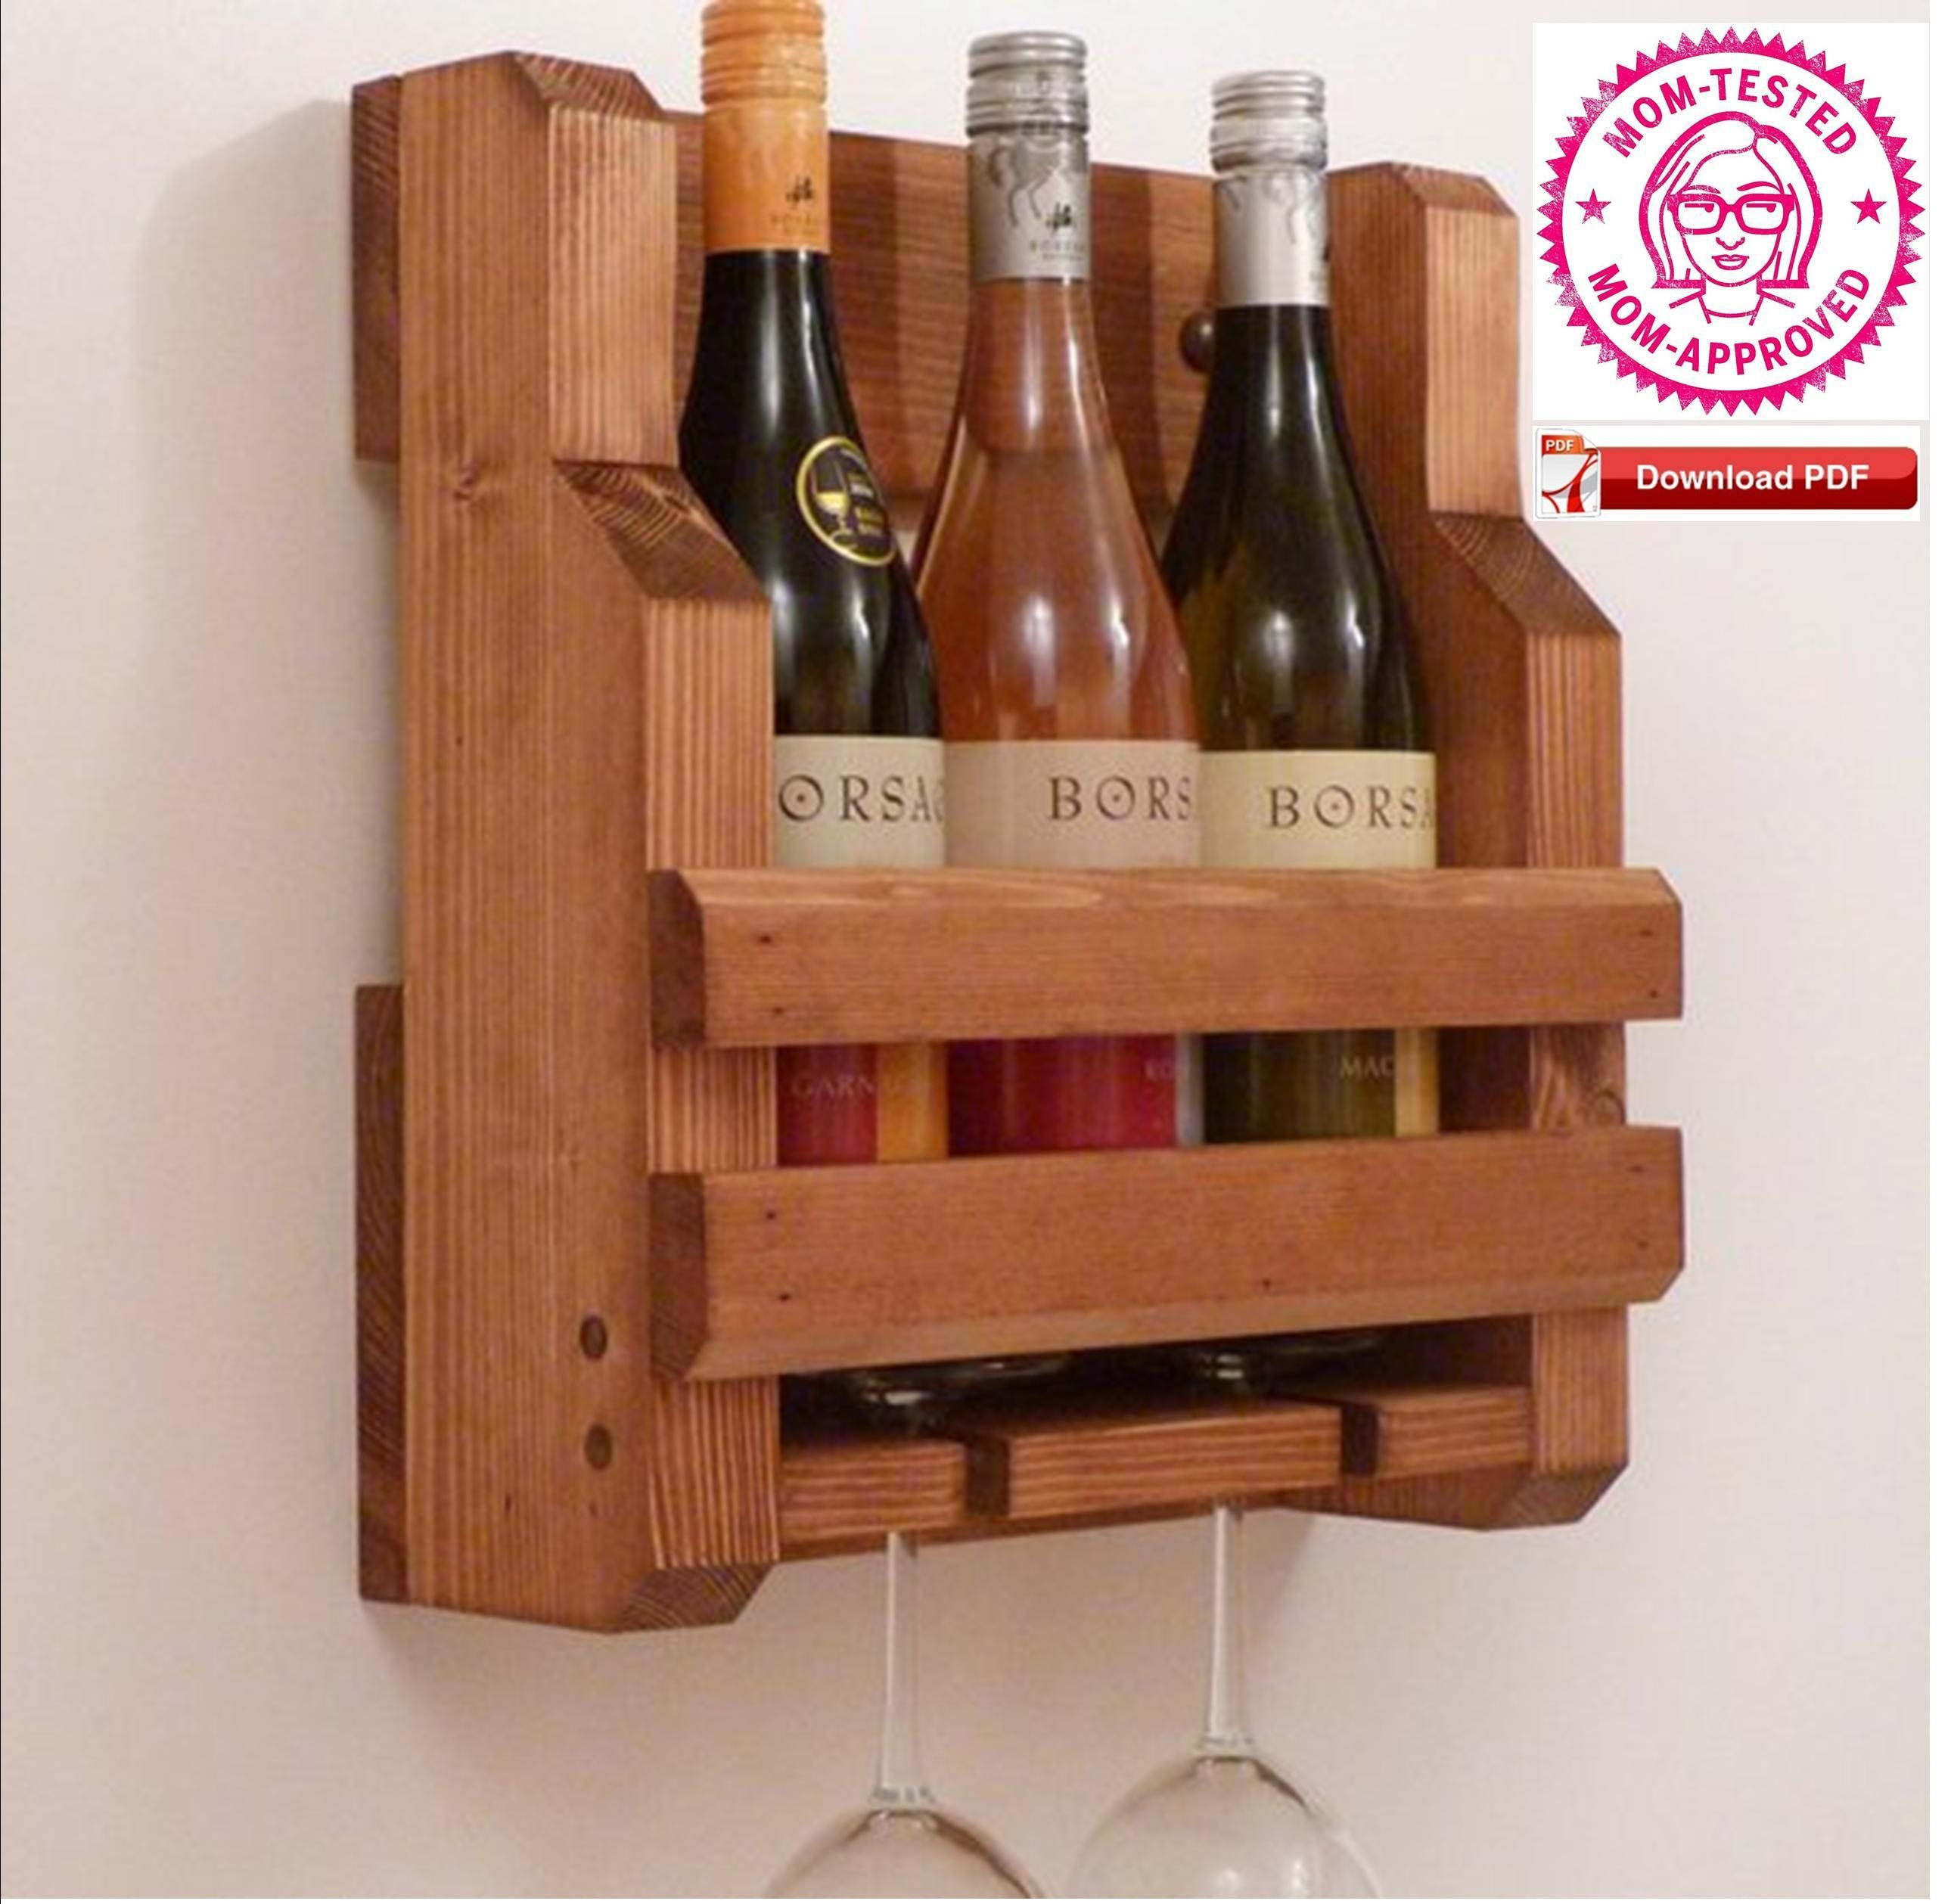 Wine Rack Plan Wall Wine Rack Plan Wine Holder Plan Wall Wine